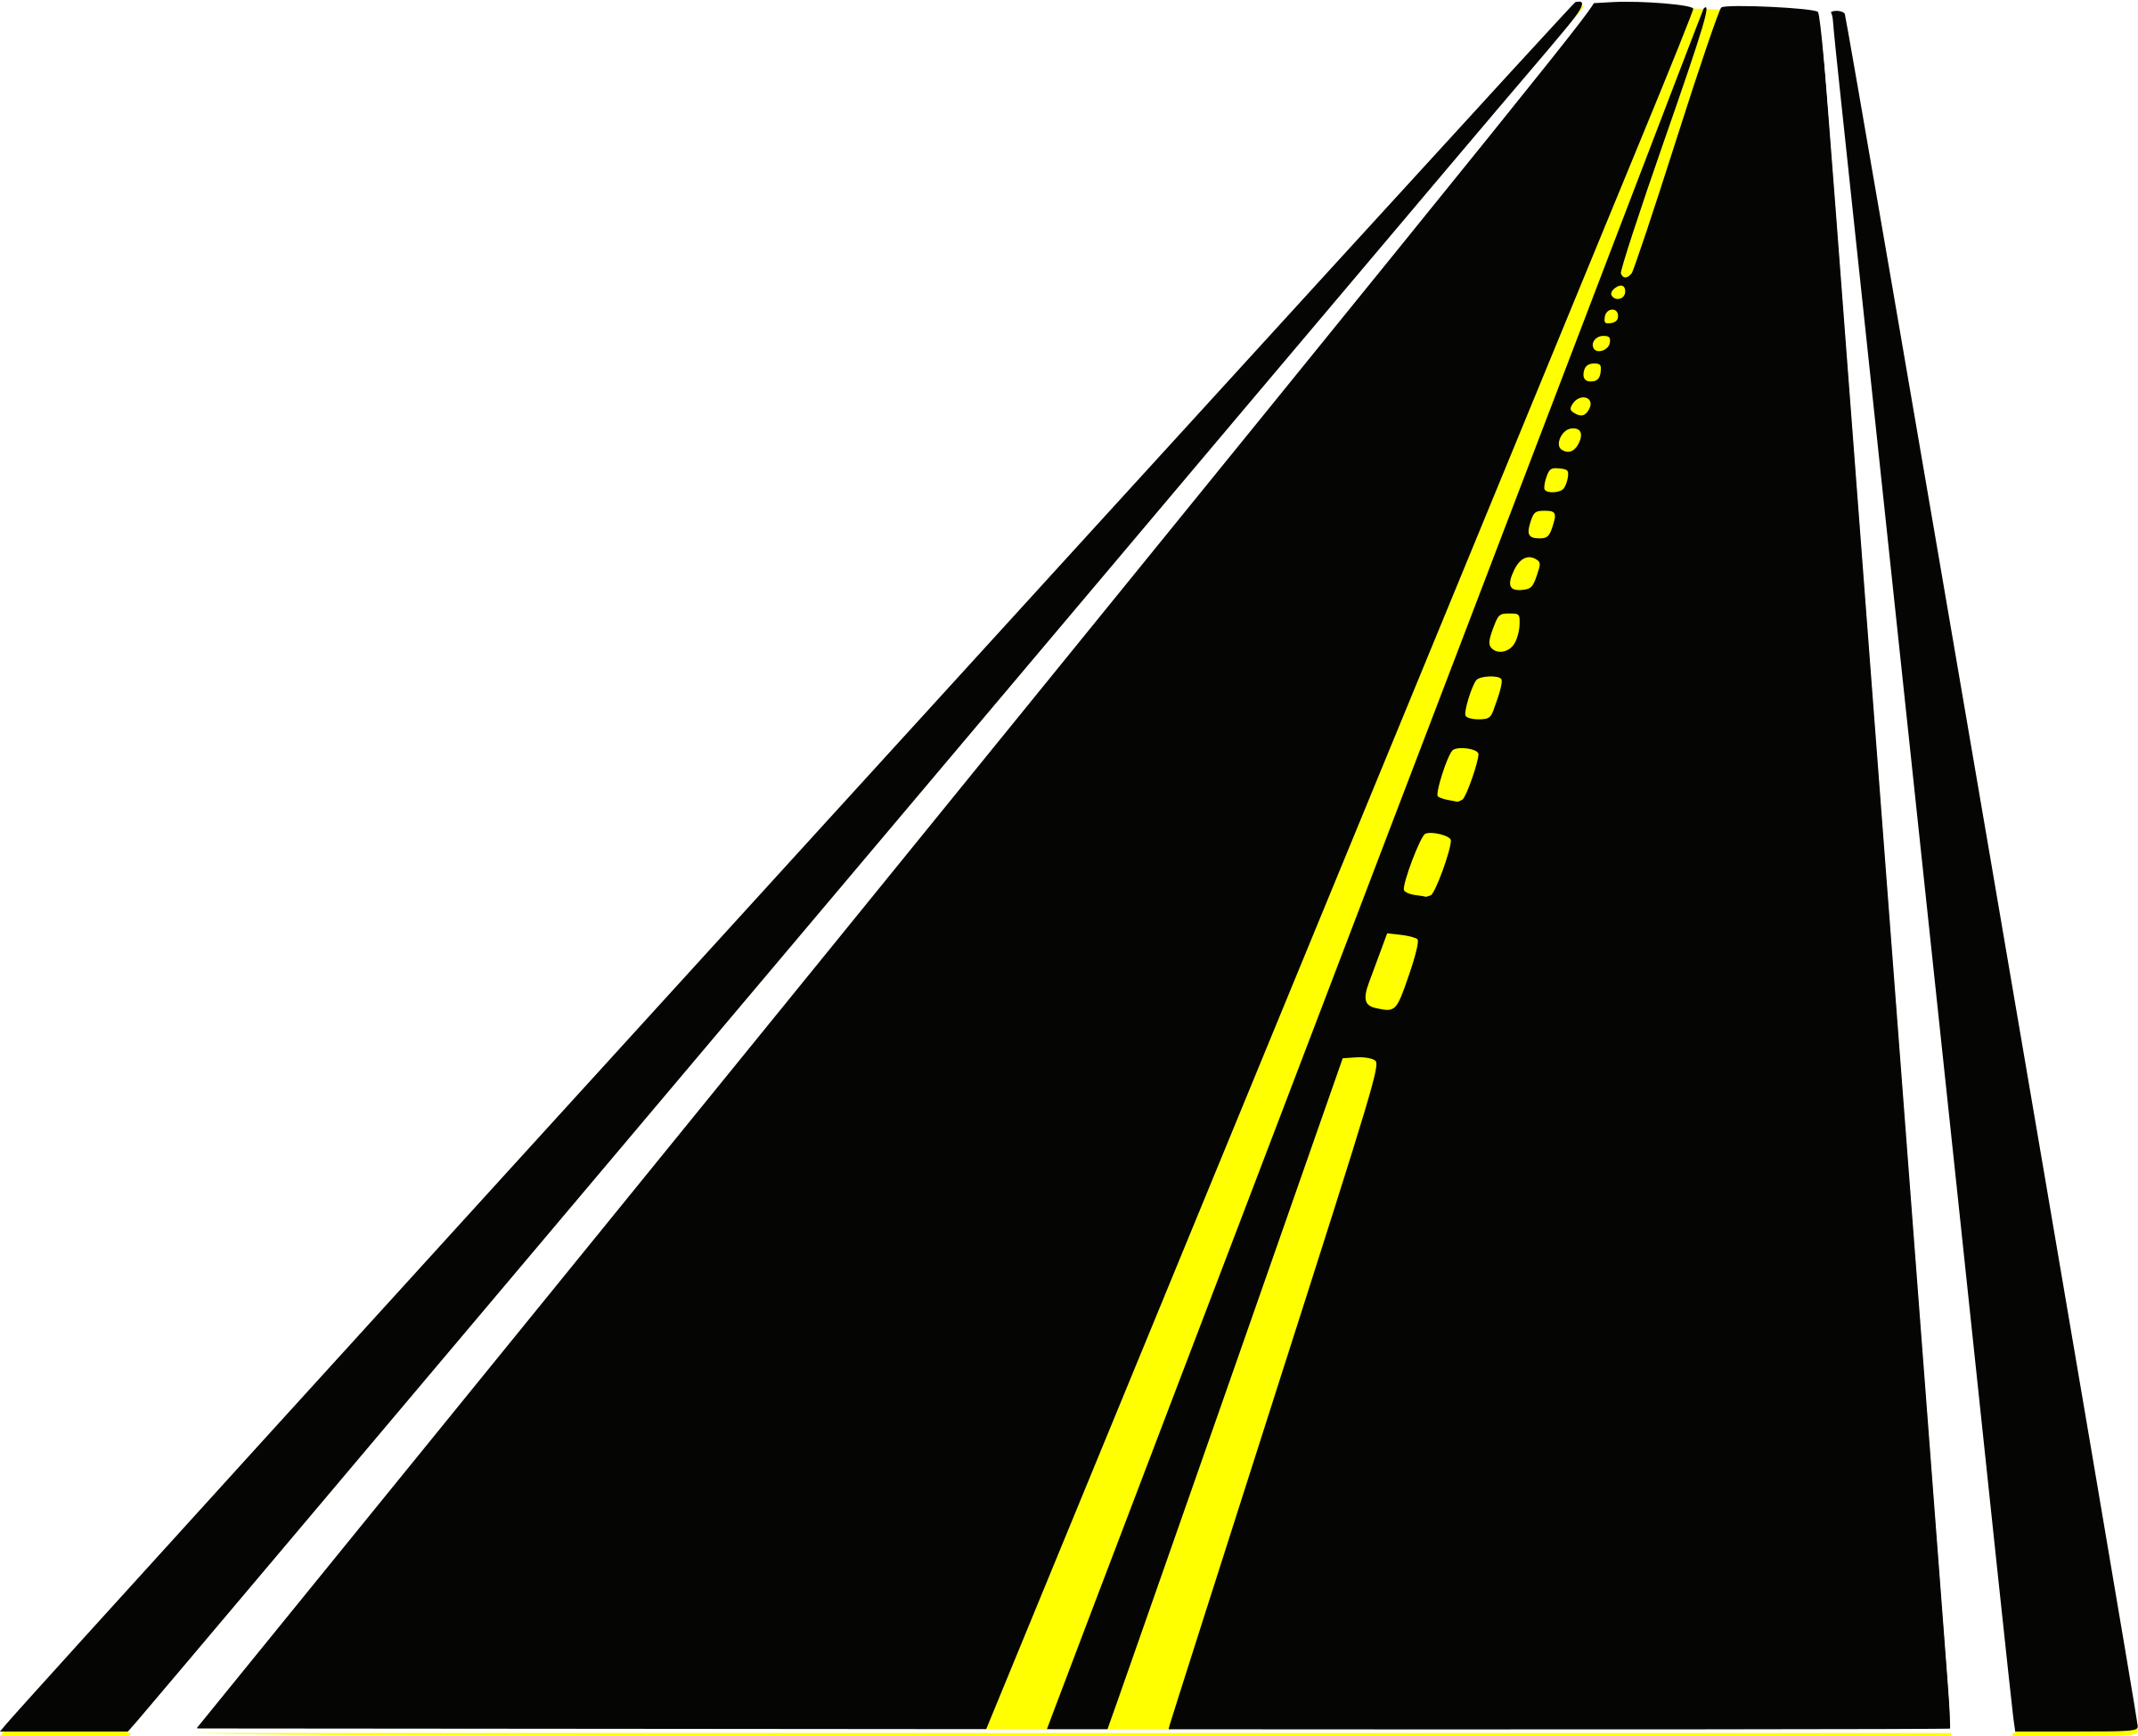 Straight clipart road way. Beauty vector free roadway